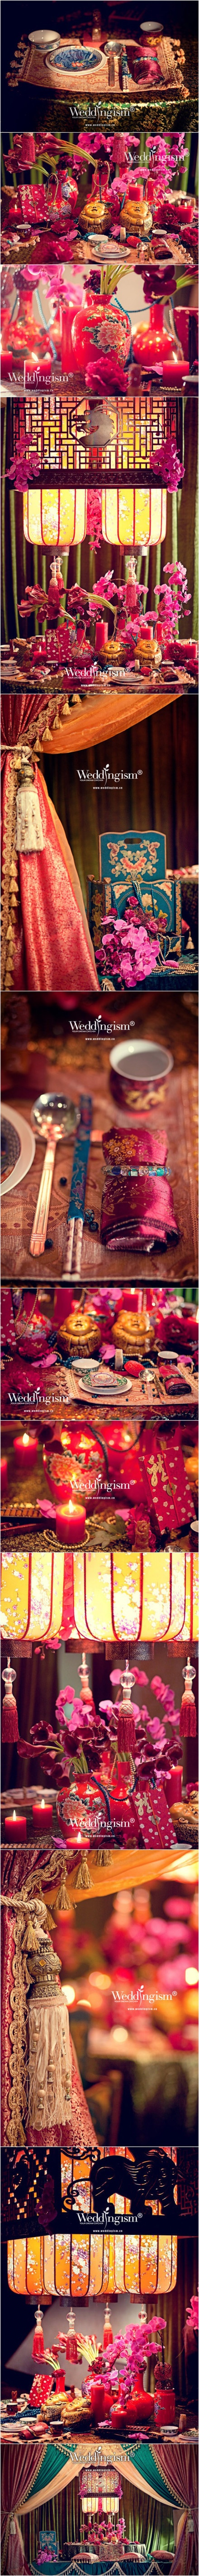 21 best Chinese wedding tradition images on Pinterest | Oriental ...